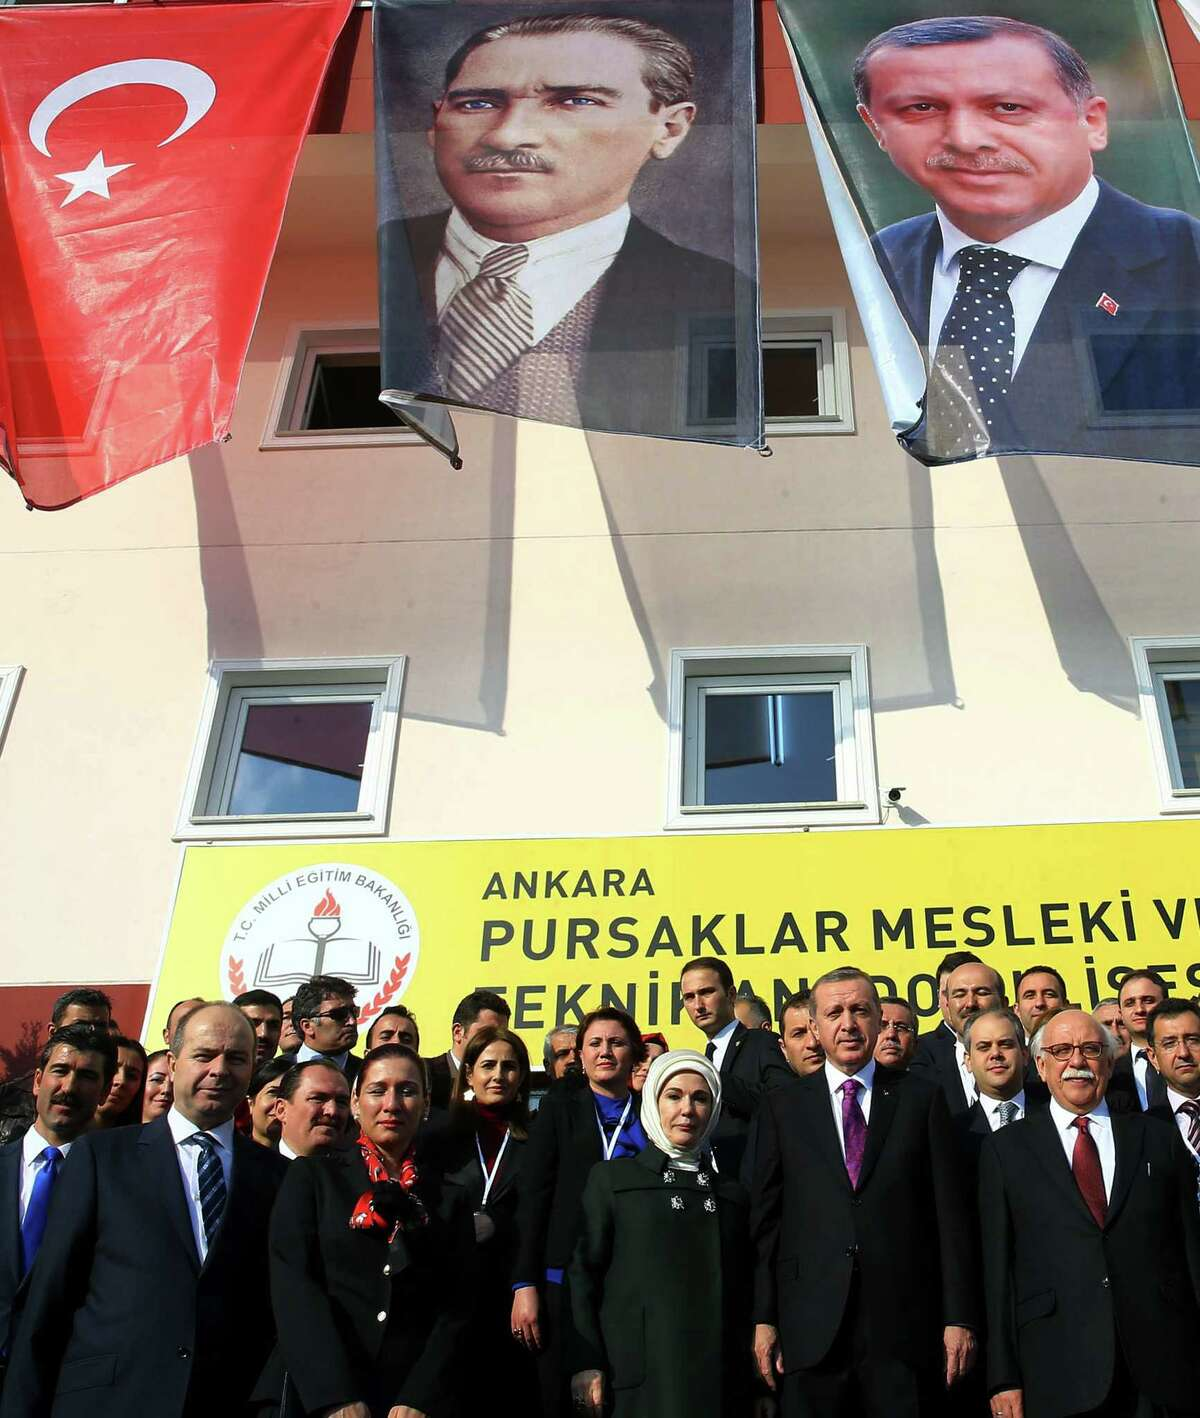 FILE - In this Nov. 18, 2014 file photo, Turkish President Recep Tayyip Erdogan, center-right, and his wife Emine Erdogan pose for photos with officials in the courtyard of a Vocational School for Girls under a poster of Mustafa Kemal Ataturk, center, outside Ankara, Turkey. Turkey has long enshrined the secular ideals of founding father Mustafa Kemal Ataturk, particularly in an education system in which Islamic headscarves were until recently banned in schools and schoolchildren began the day reciting an oath of allegiance to Ataturkís legacy. Now proponents of Turkeyís secular traditions claim President Recep Tayyip Erdogan is overturning those traditions by building a more Islam-focused education system to realize his stated goal of raising ìpious generations.î (AP Photo/File)